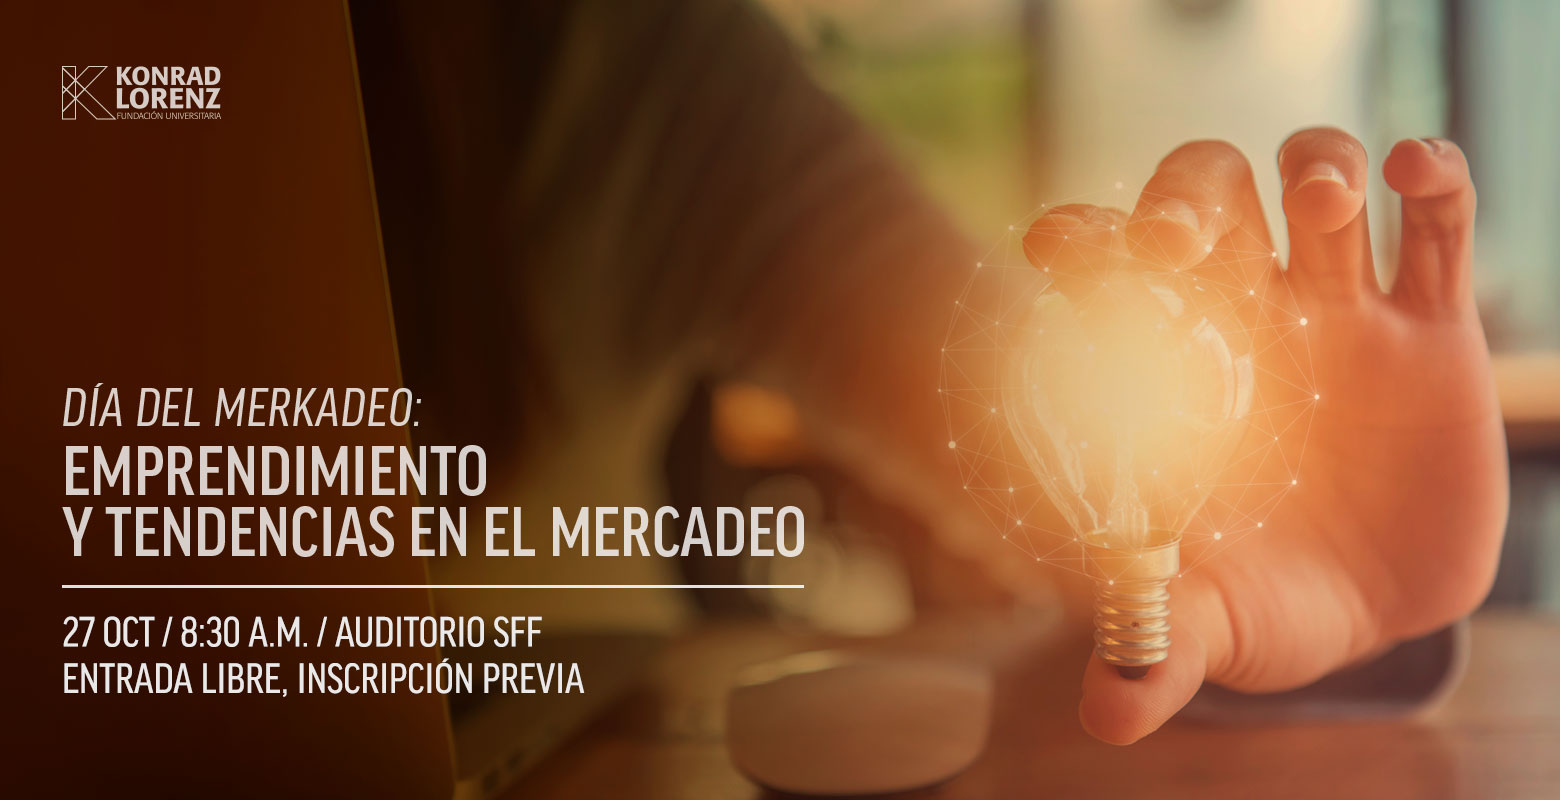 Emprendimiento y tendencias en el mercadeo